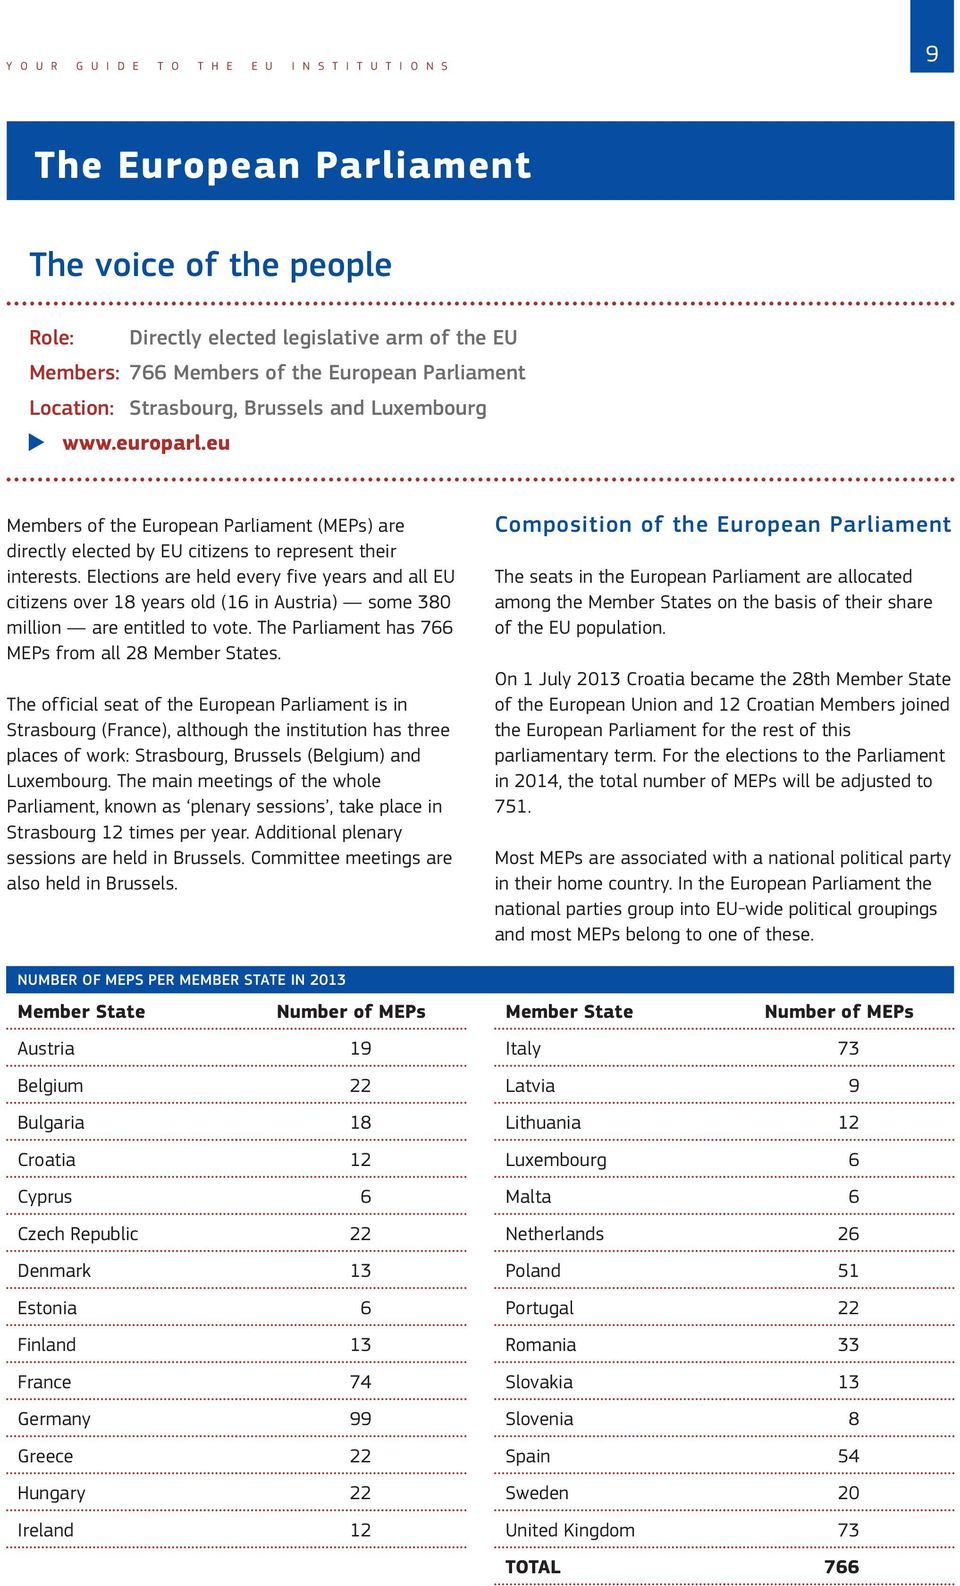 Elections are held every five years and all EU citizens over 18 years old (16 in Austria) some 380 million are entitled to vote. The Parliament has 766 MEPs from all 28 Member States.